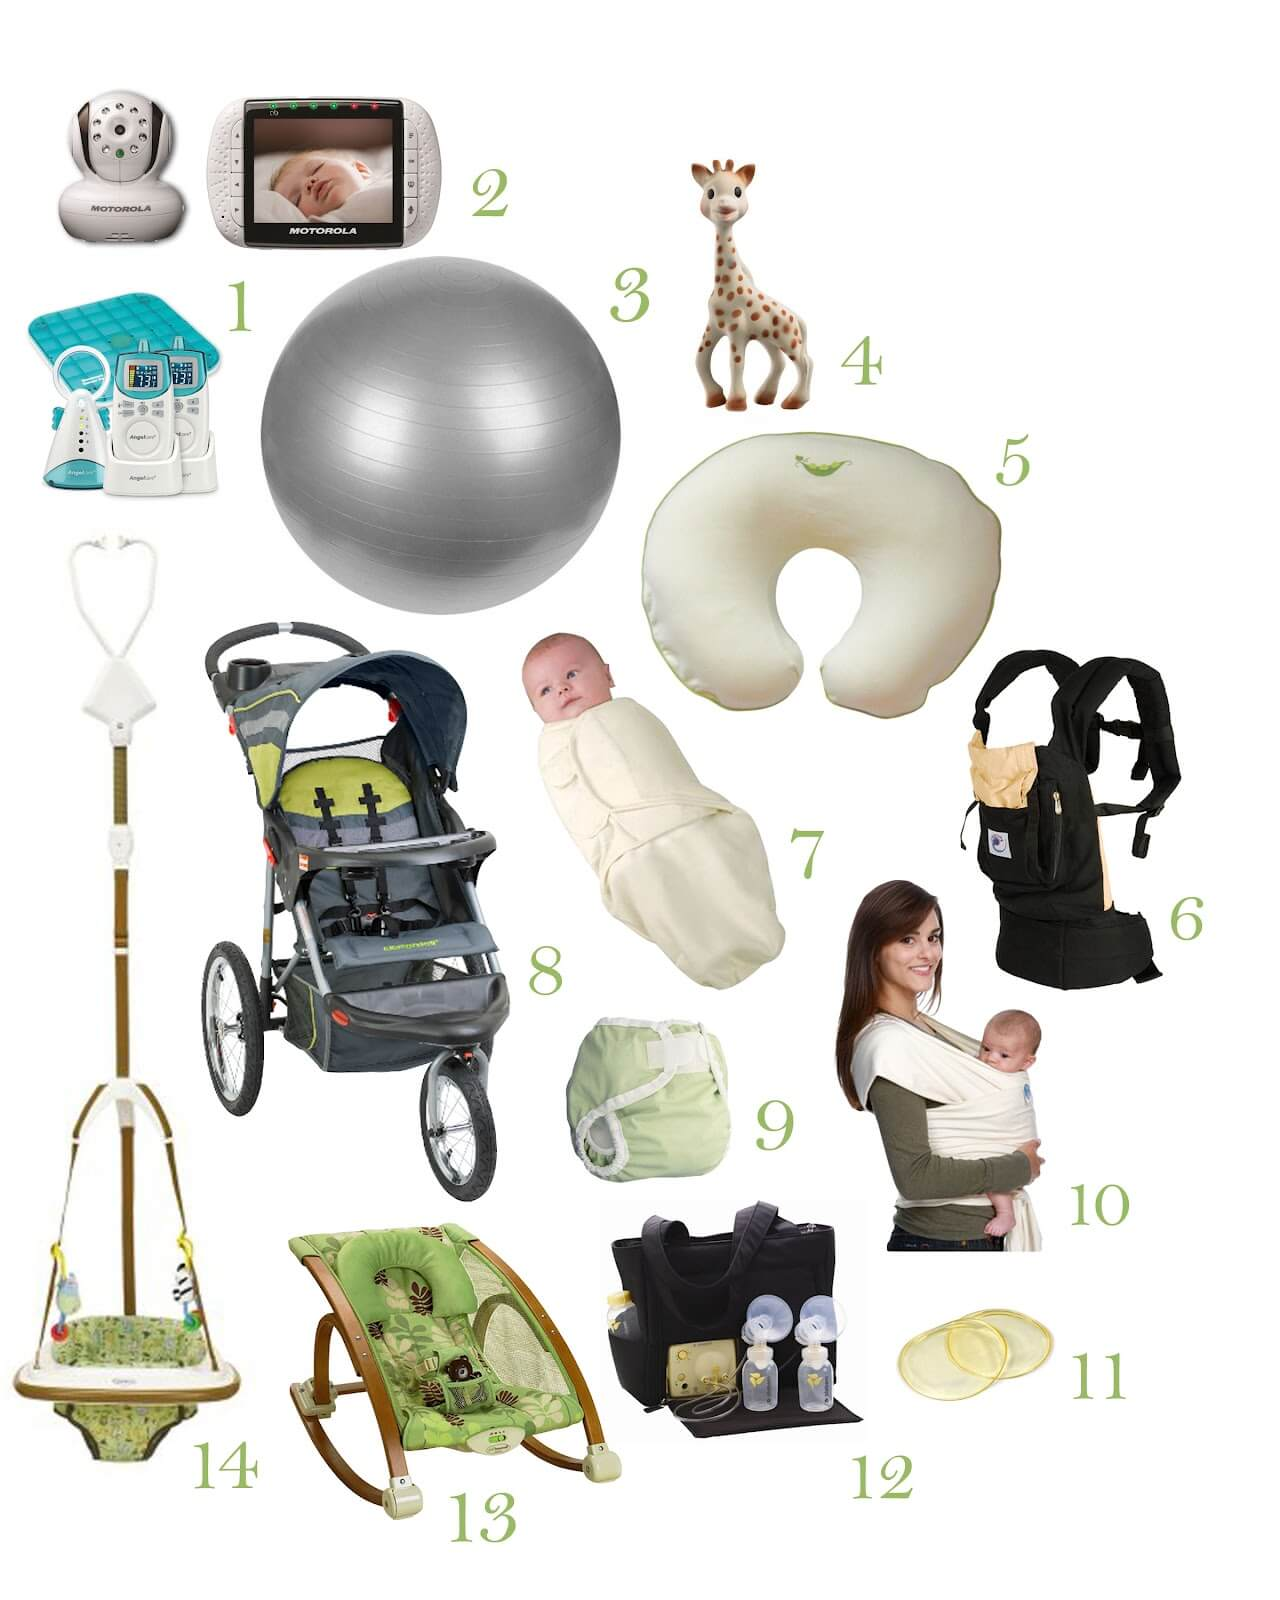 You will end up with so much baby stuff over the years, and you can only hand so much of it down